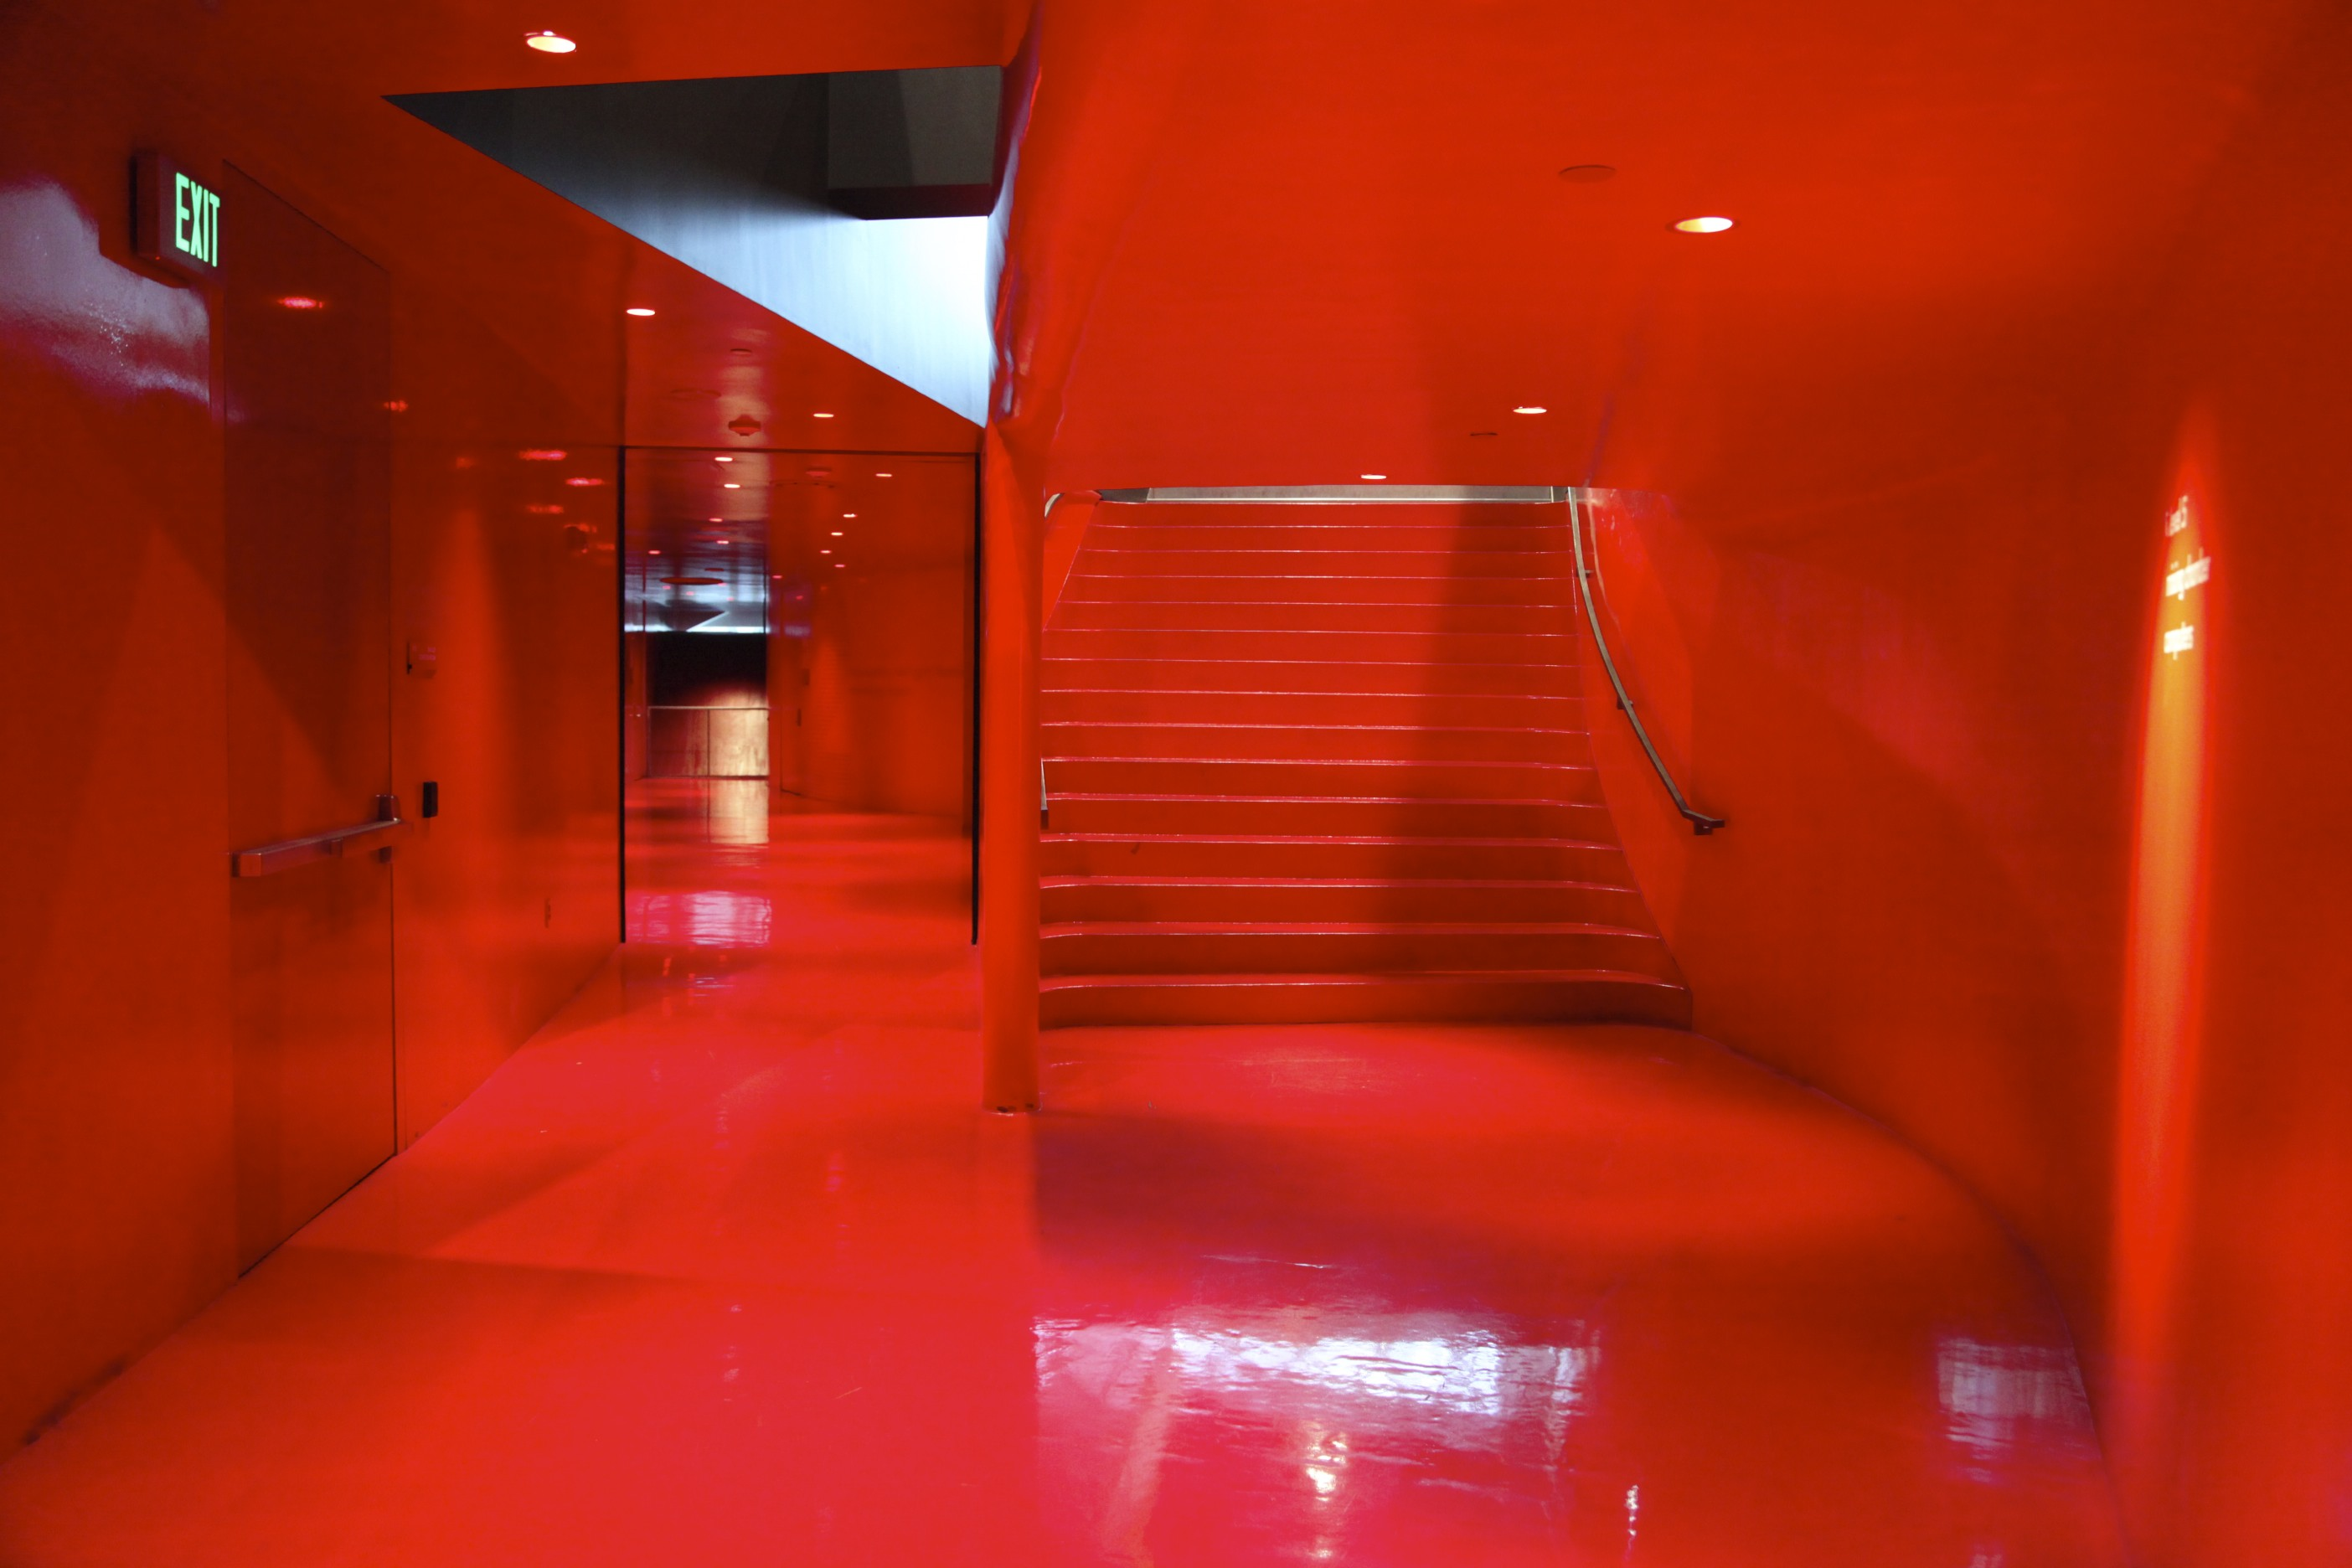 Red Rooms Filered Rooms 3233624954  Wikimedia Commons